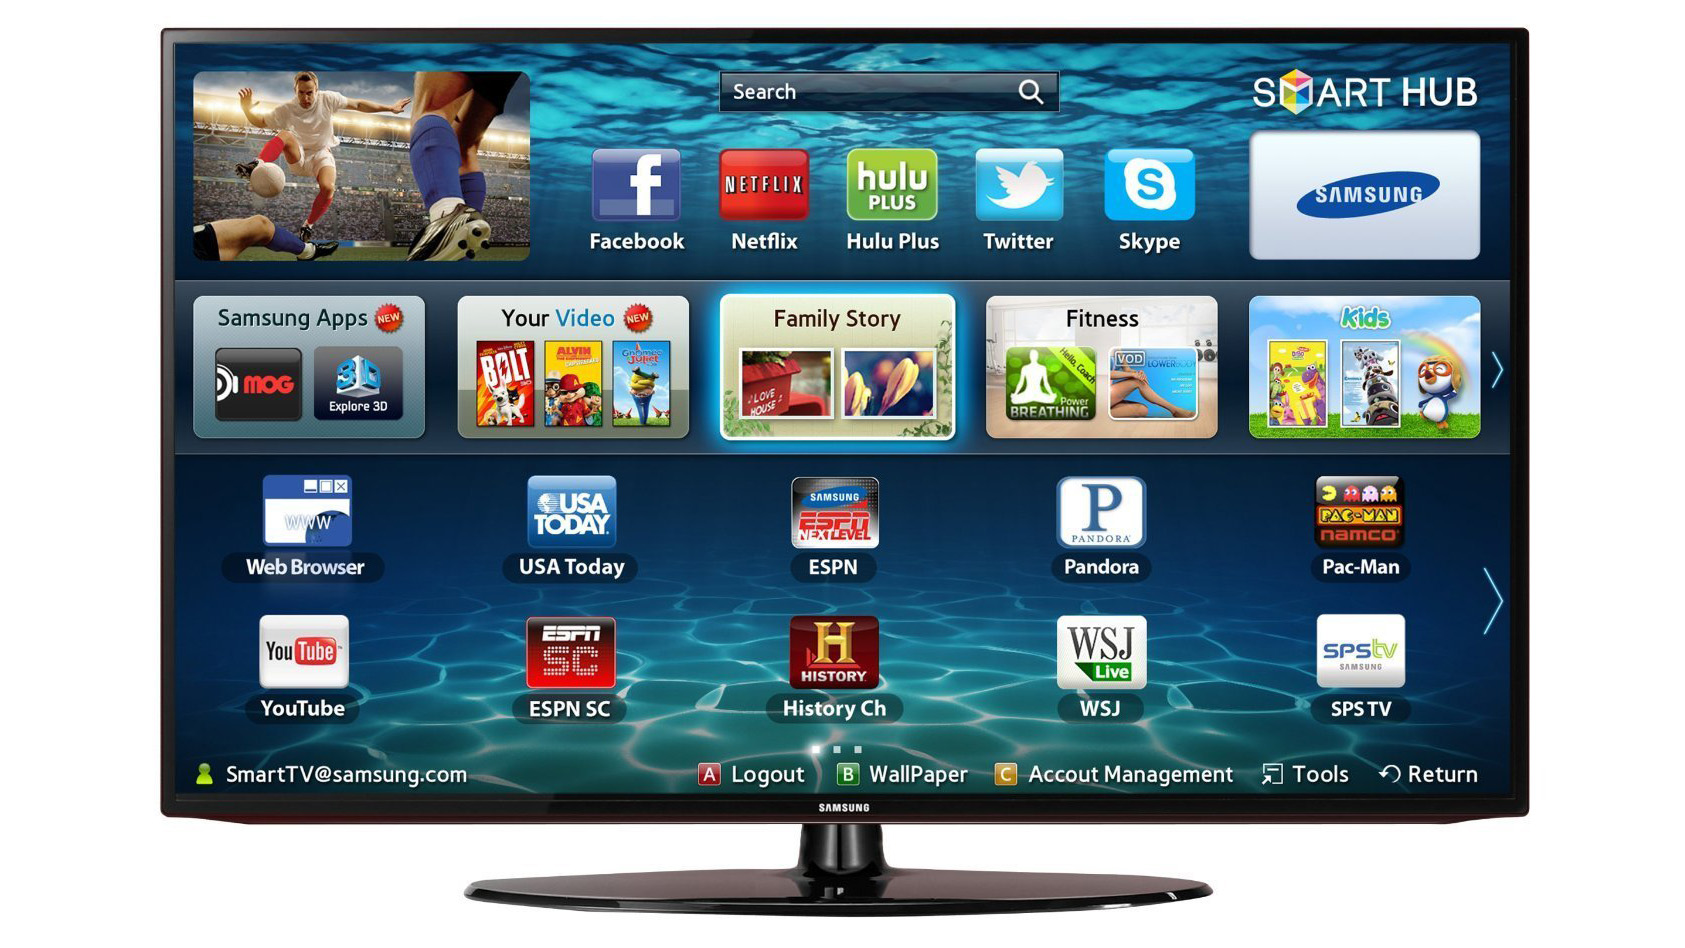 The Best Small TV Today (32-Inches) - Tested for Samsung Flat Screen Tv 32 Inch  257ylc